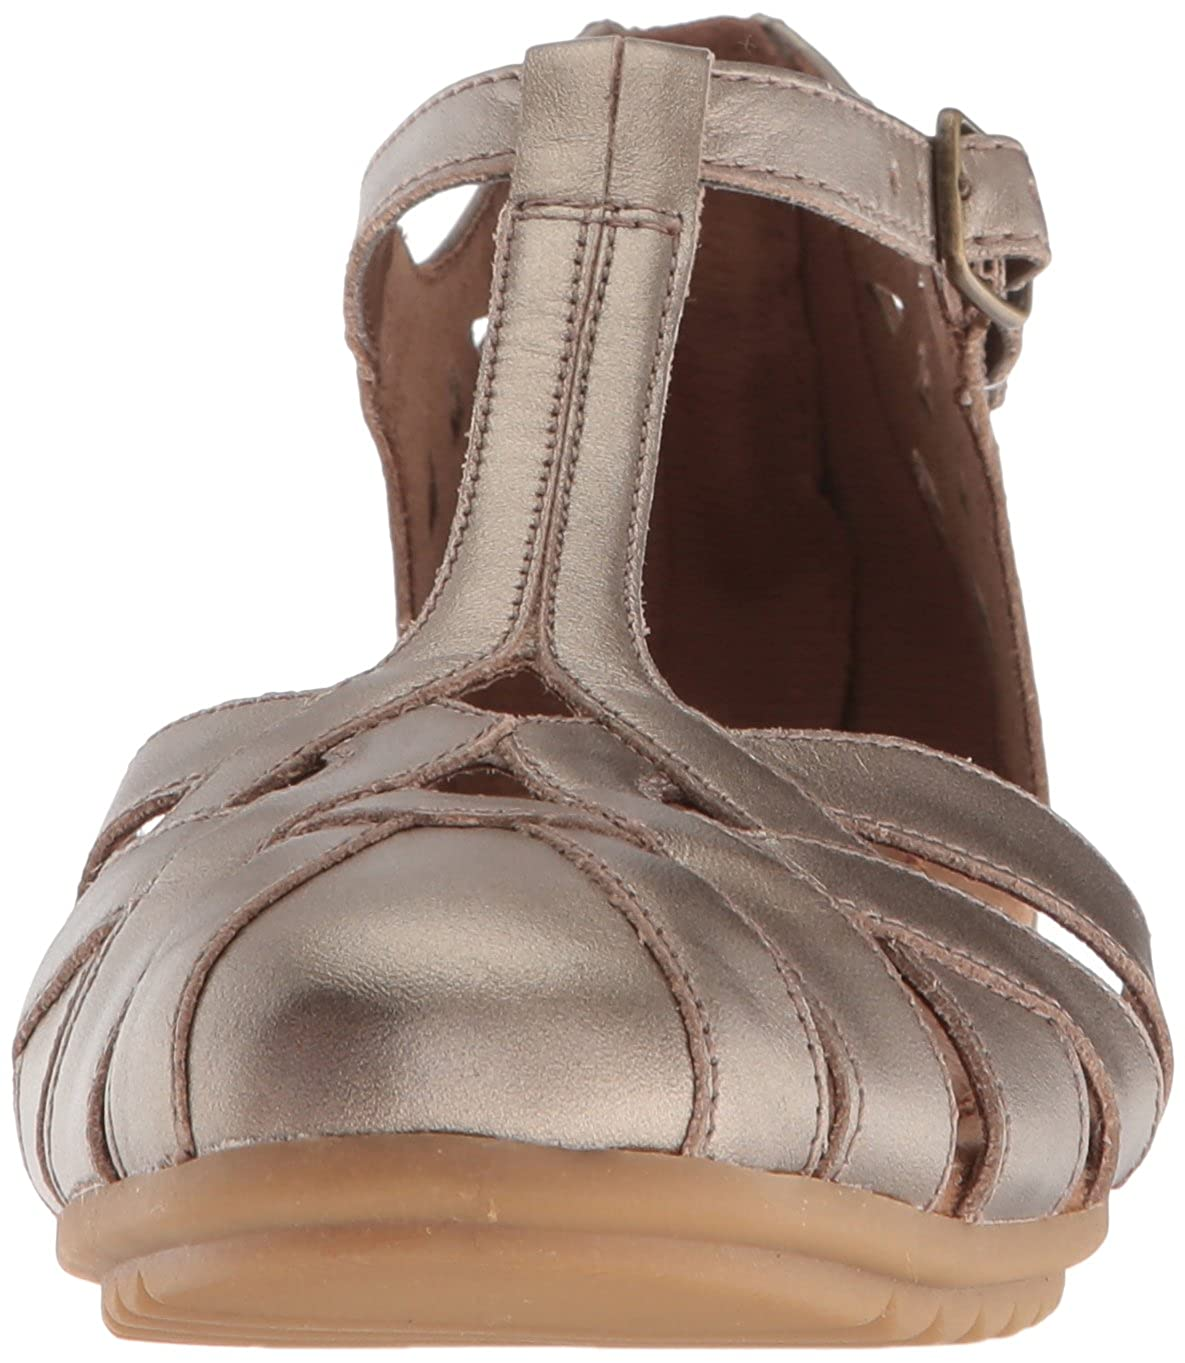 Cobb Hill Women's Ireland Dress CH Enclosed Dress Ireland Sandal B00M1PKHVY Flats 35ded6